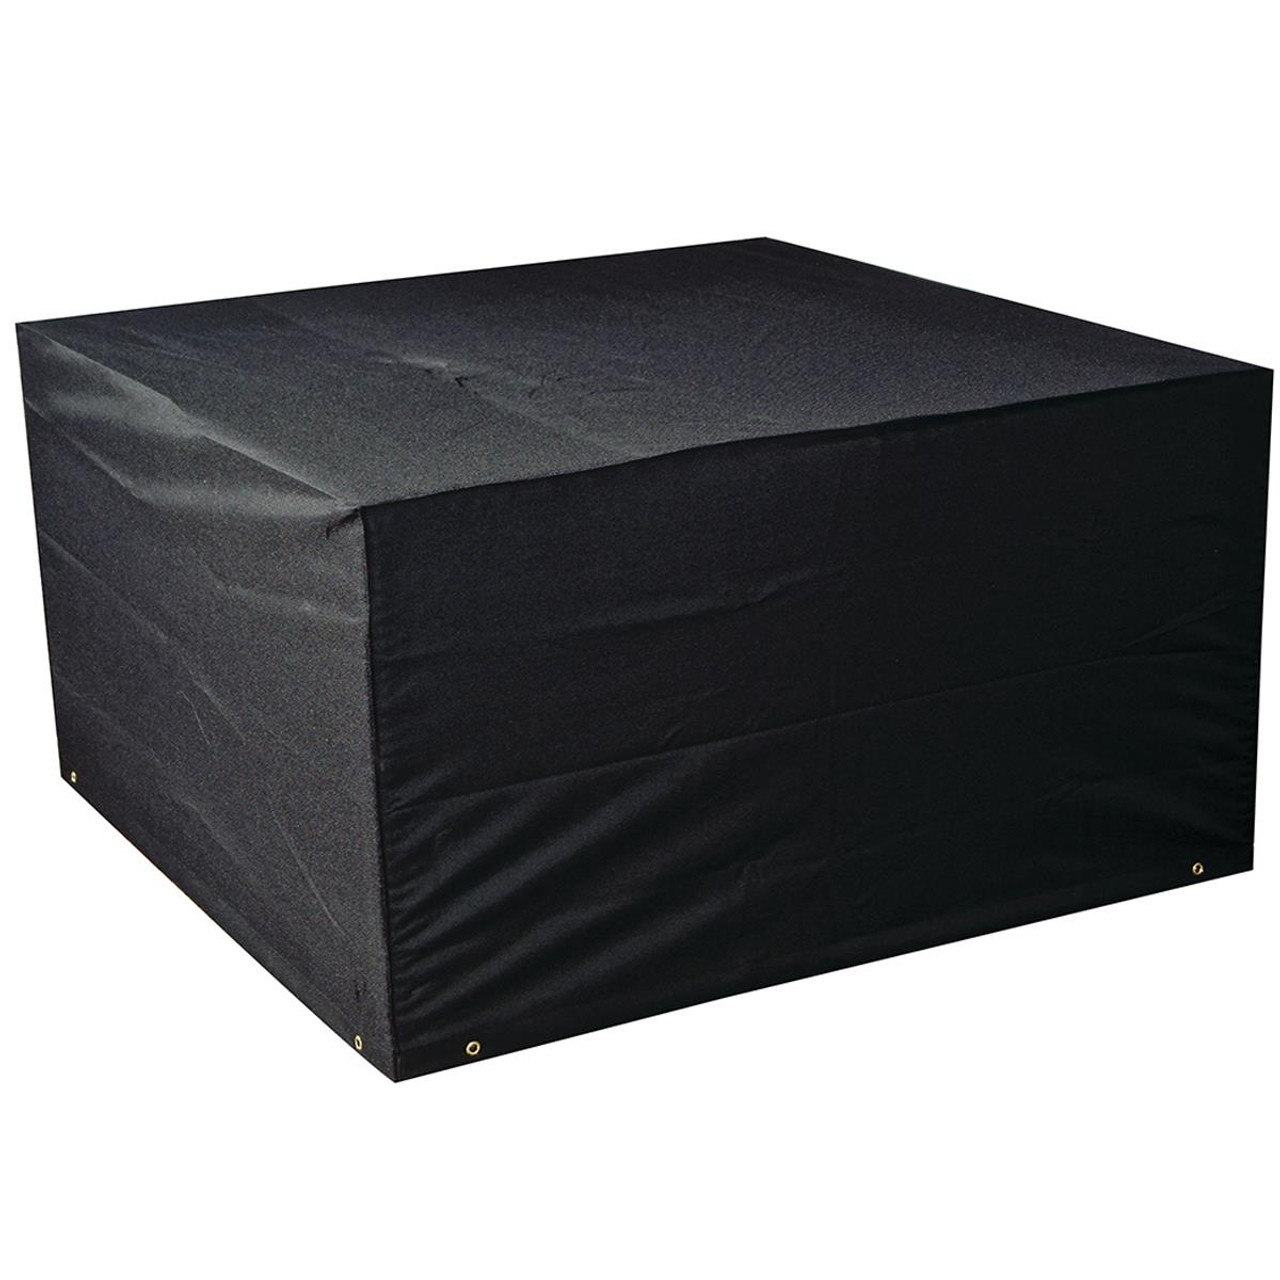 Bosmere Protector 6000 Storage Box Cover